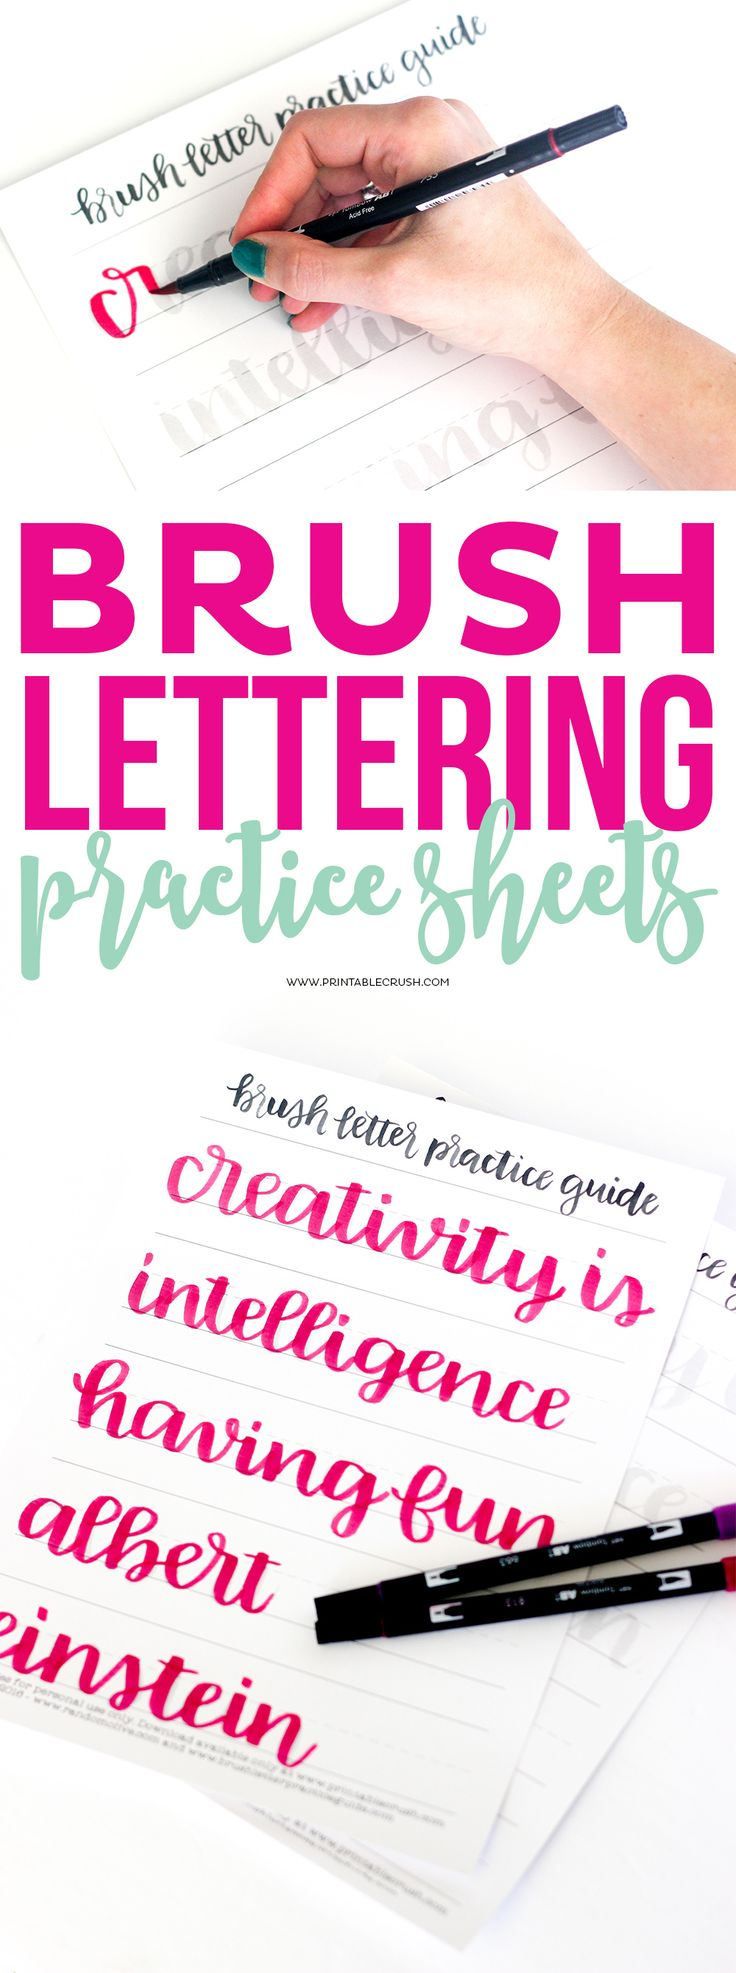 Use this Brush Lettering Practice Sheet to get you started with your lettering skills! These were designed by the super talented Olivia from Random Olive!